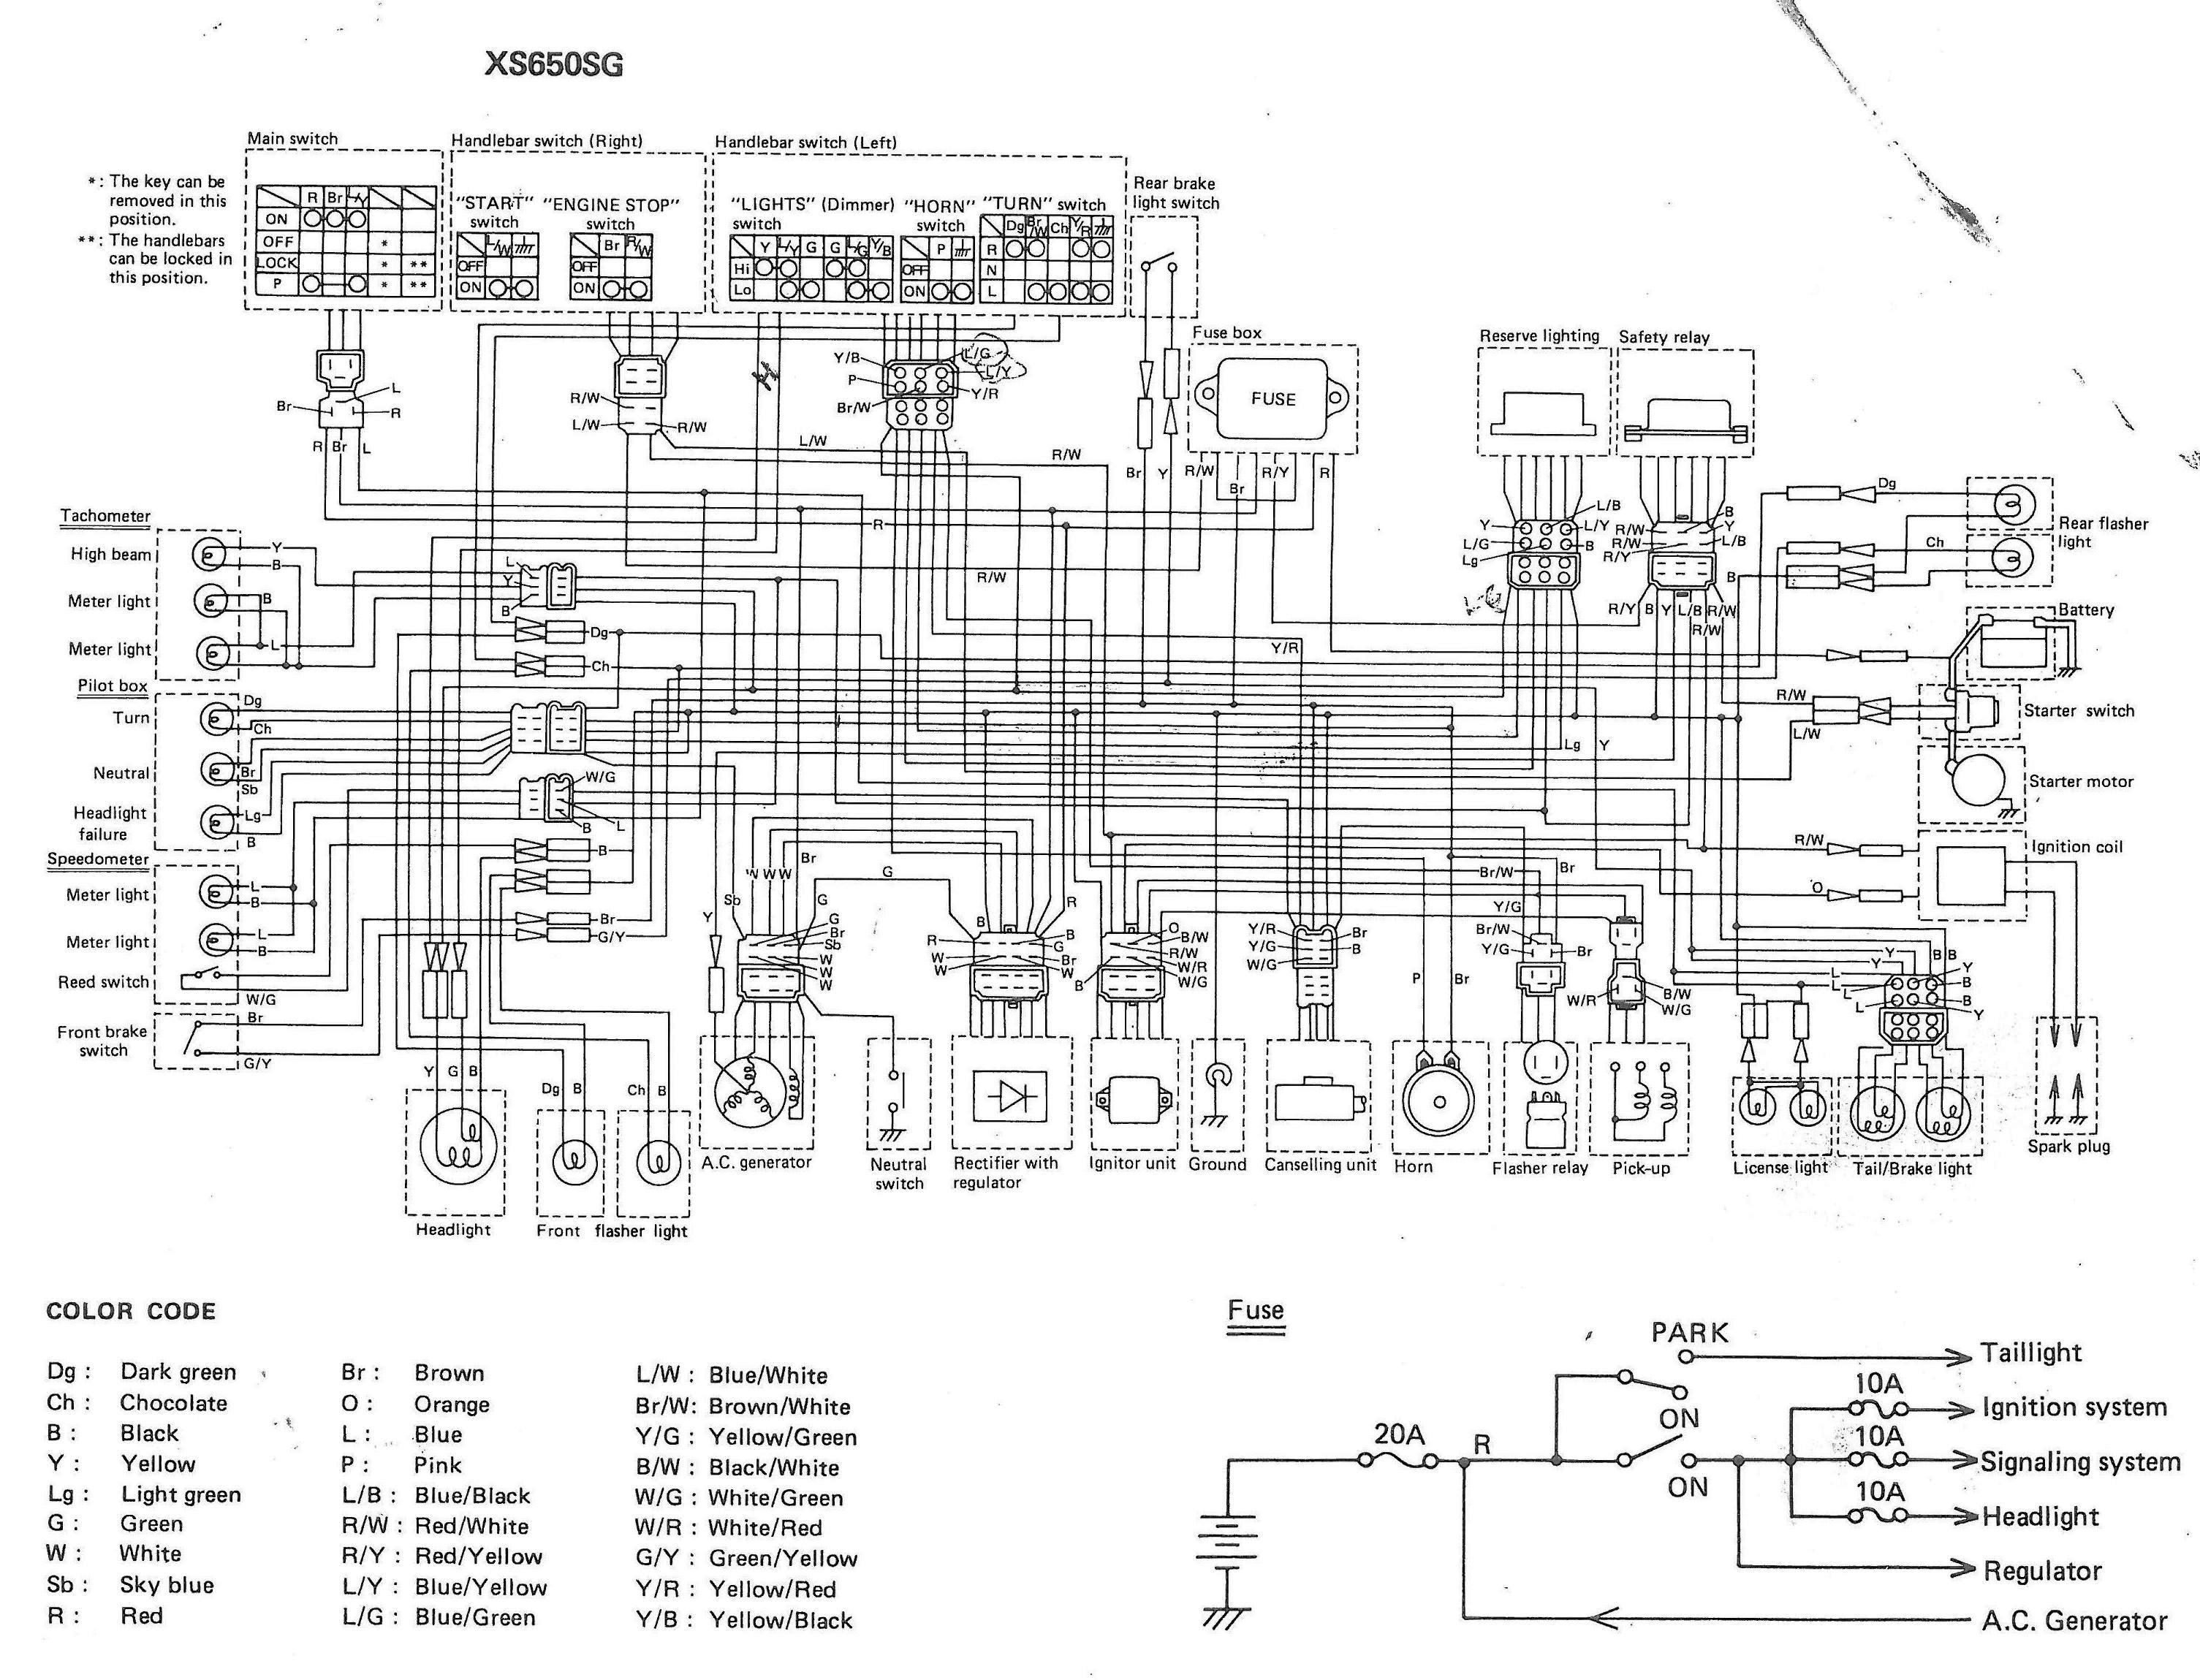 1983 Yamaha Maxim 750 Wiring Diagram Library 1977 Scout 1985 Schematics Diagrams U2022 Rh Parntesis Co 650